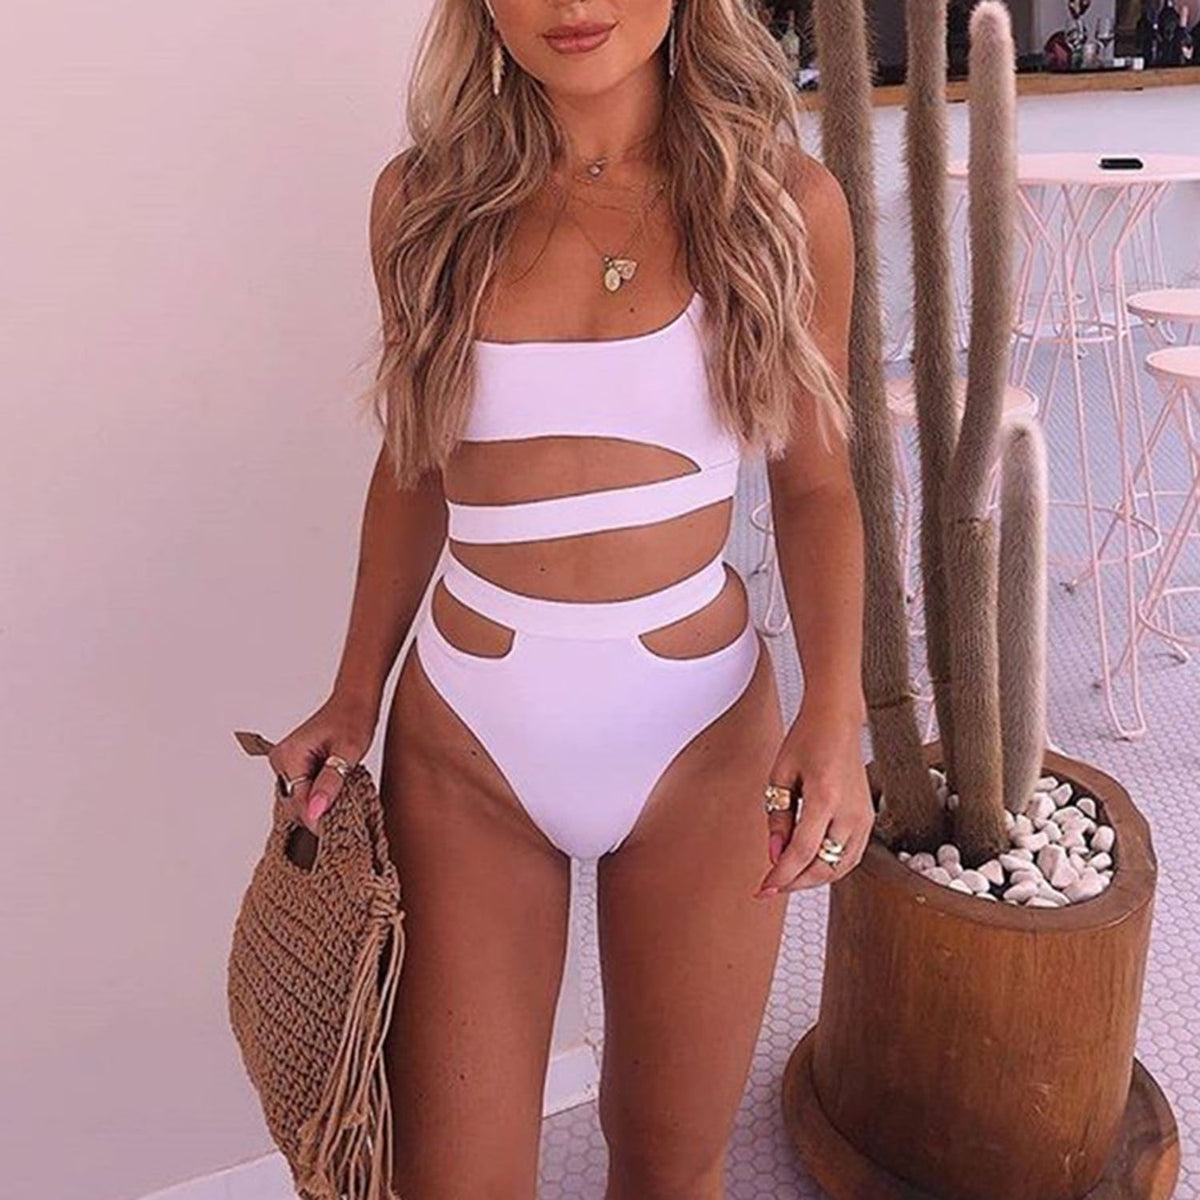 Cut Out Crop Top High Waist Bikini Swimsuit PX20 - worthtryit.com